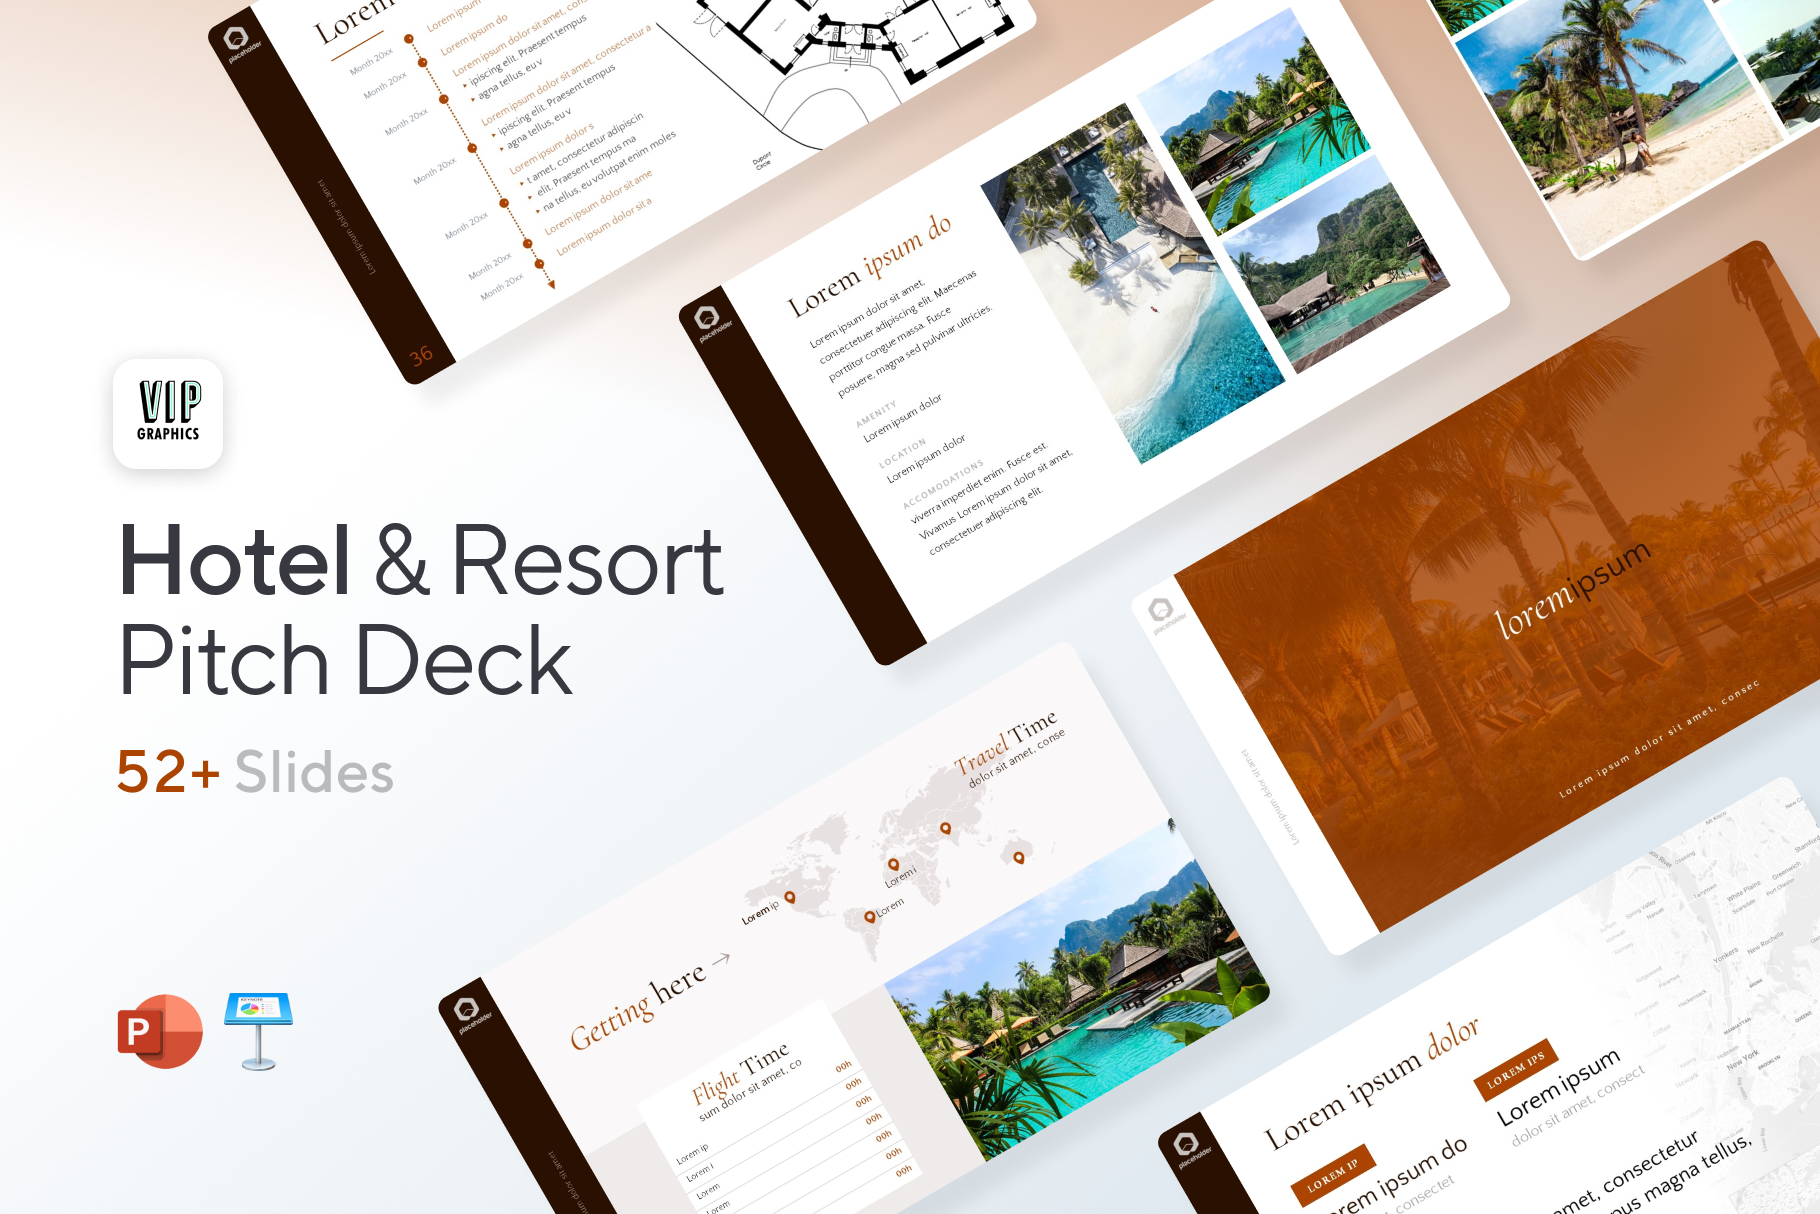 Hotel & Resort - Travel Pitch Deck Template for PowerPoint & Keynote | VIP Graphics